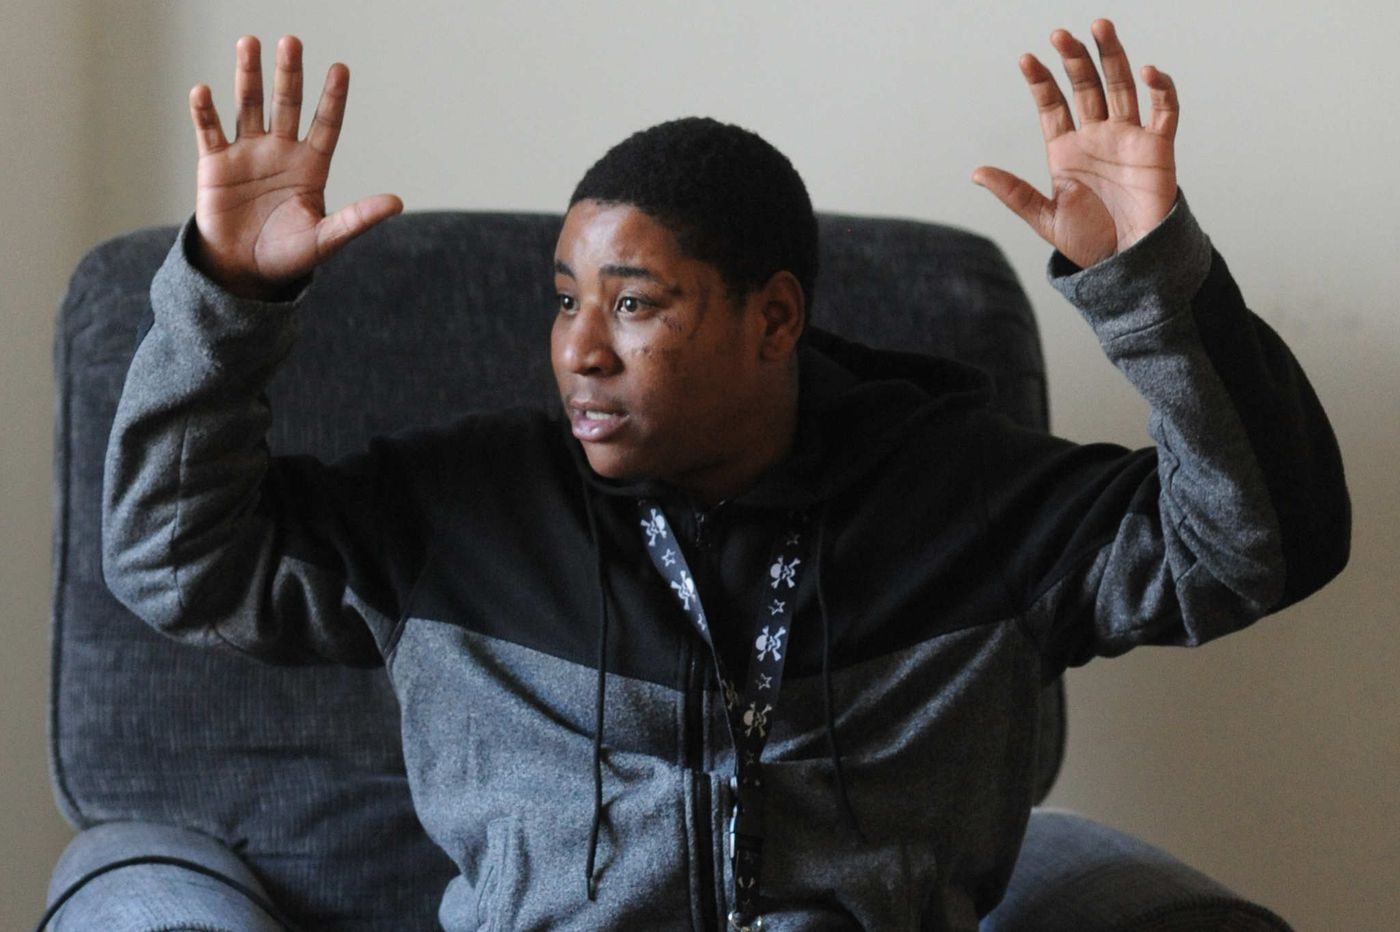 Victim in racial bias case involving ex-police chief in South Jersey tells of harrowing encounter